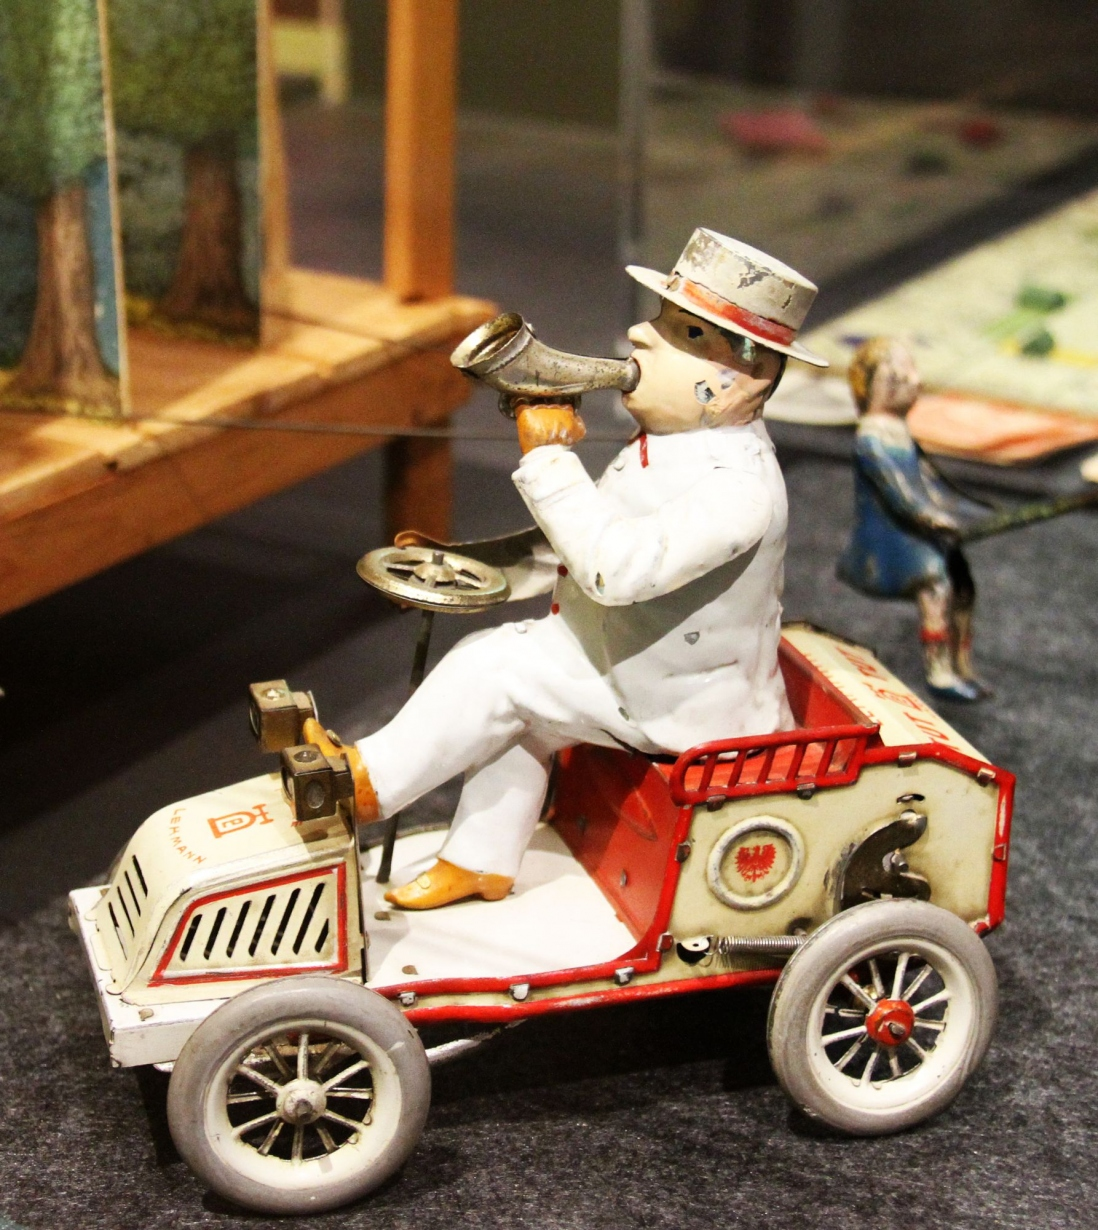 This is a photograph of an early open car with a driver blowing a trumpet